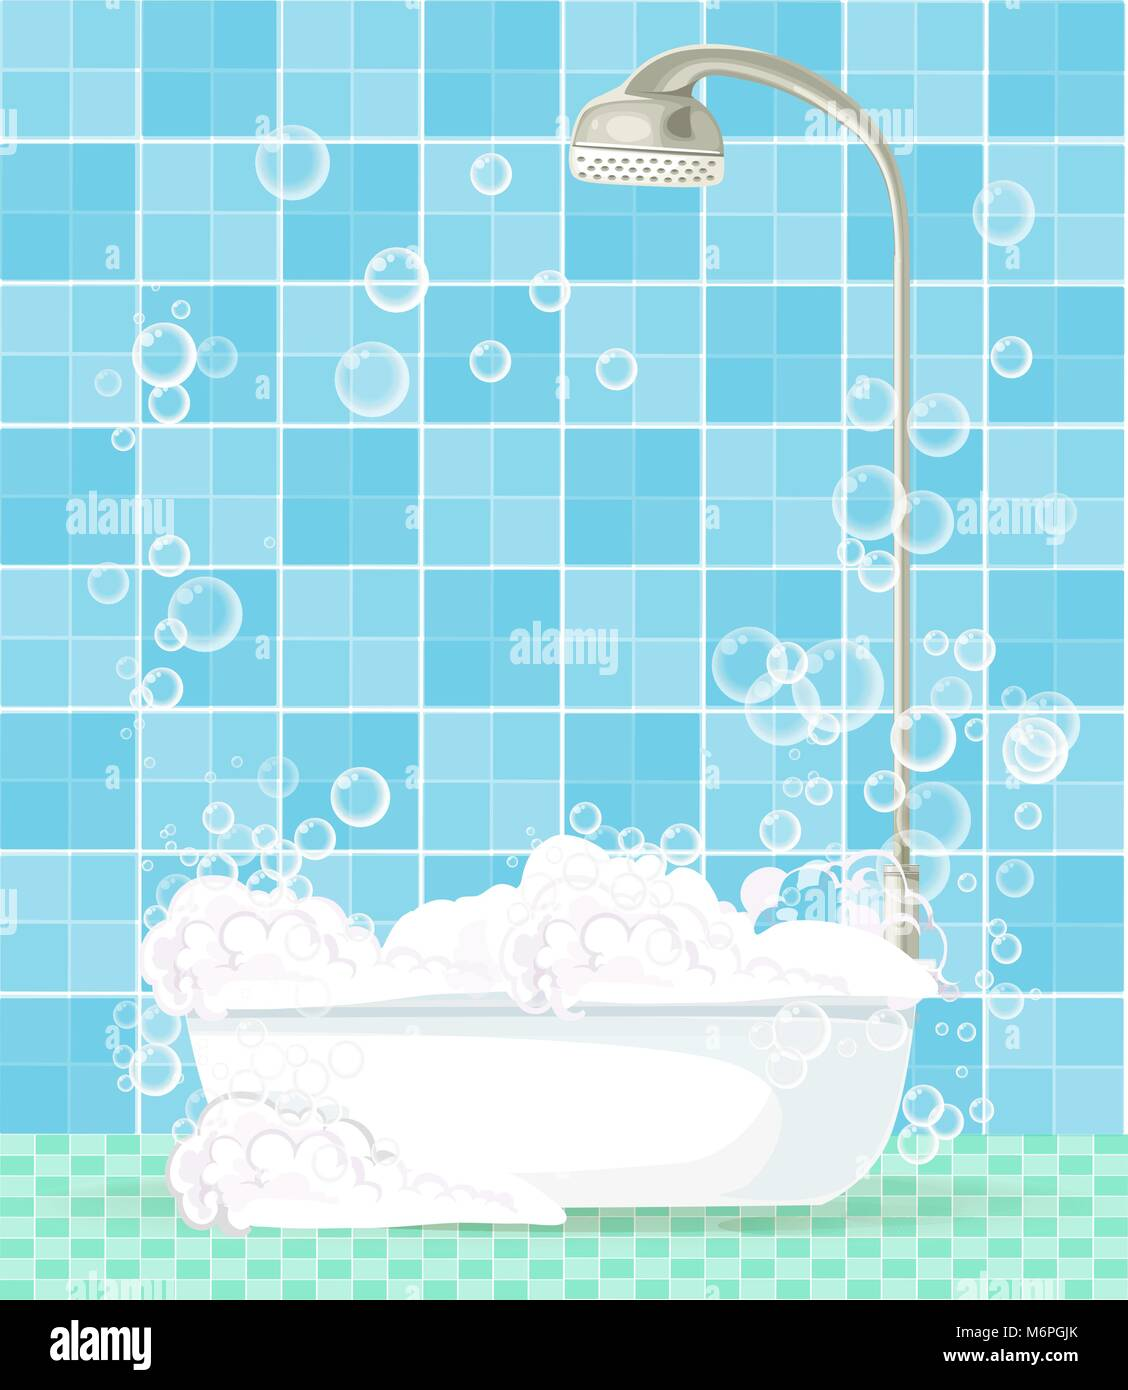 Cute Cartoon Template With Bathroom Interior Bathtub Full Of Foam Floating Soap Bubbles And Copy Space On Blue Tiled Background Comfortable Equipme